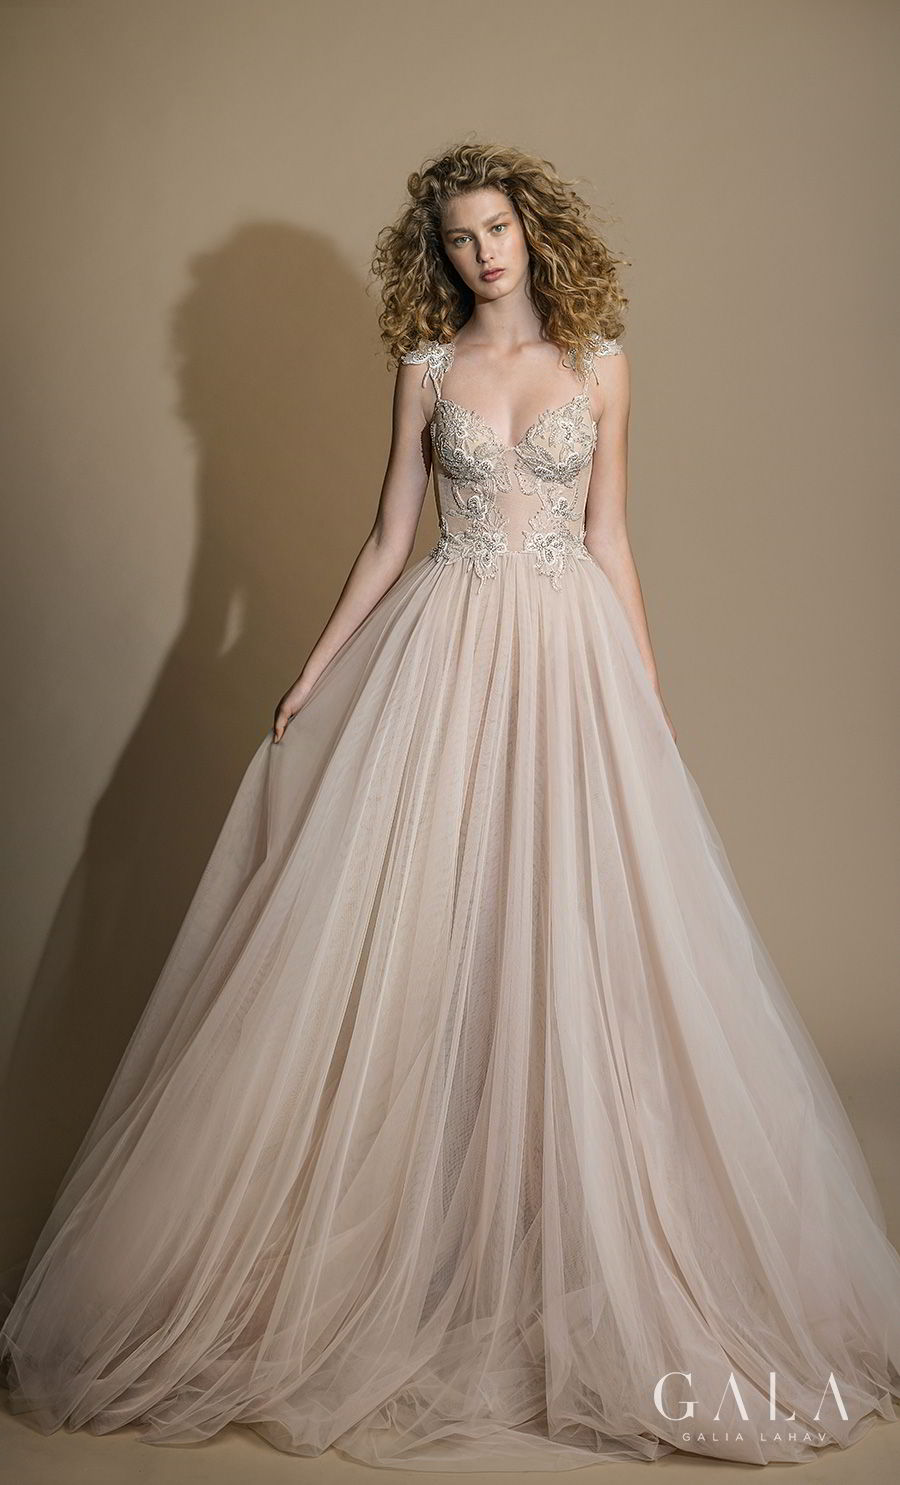 galia lahav gala 2019 bridal sleeveless with strap sweetheart neckline heavily embellished bodice bustier tulle skirt romantic blush a line wedding dress razor back chapel train (111) mv